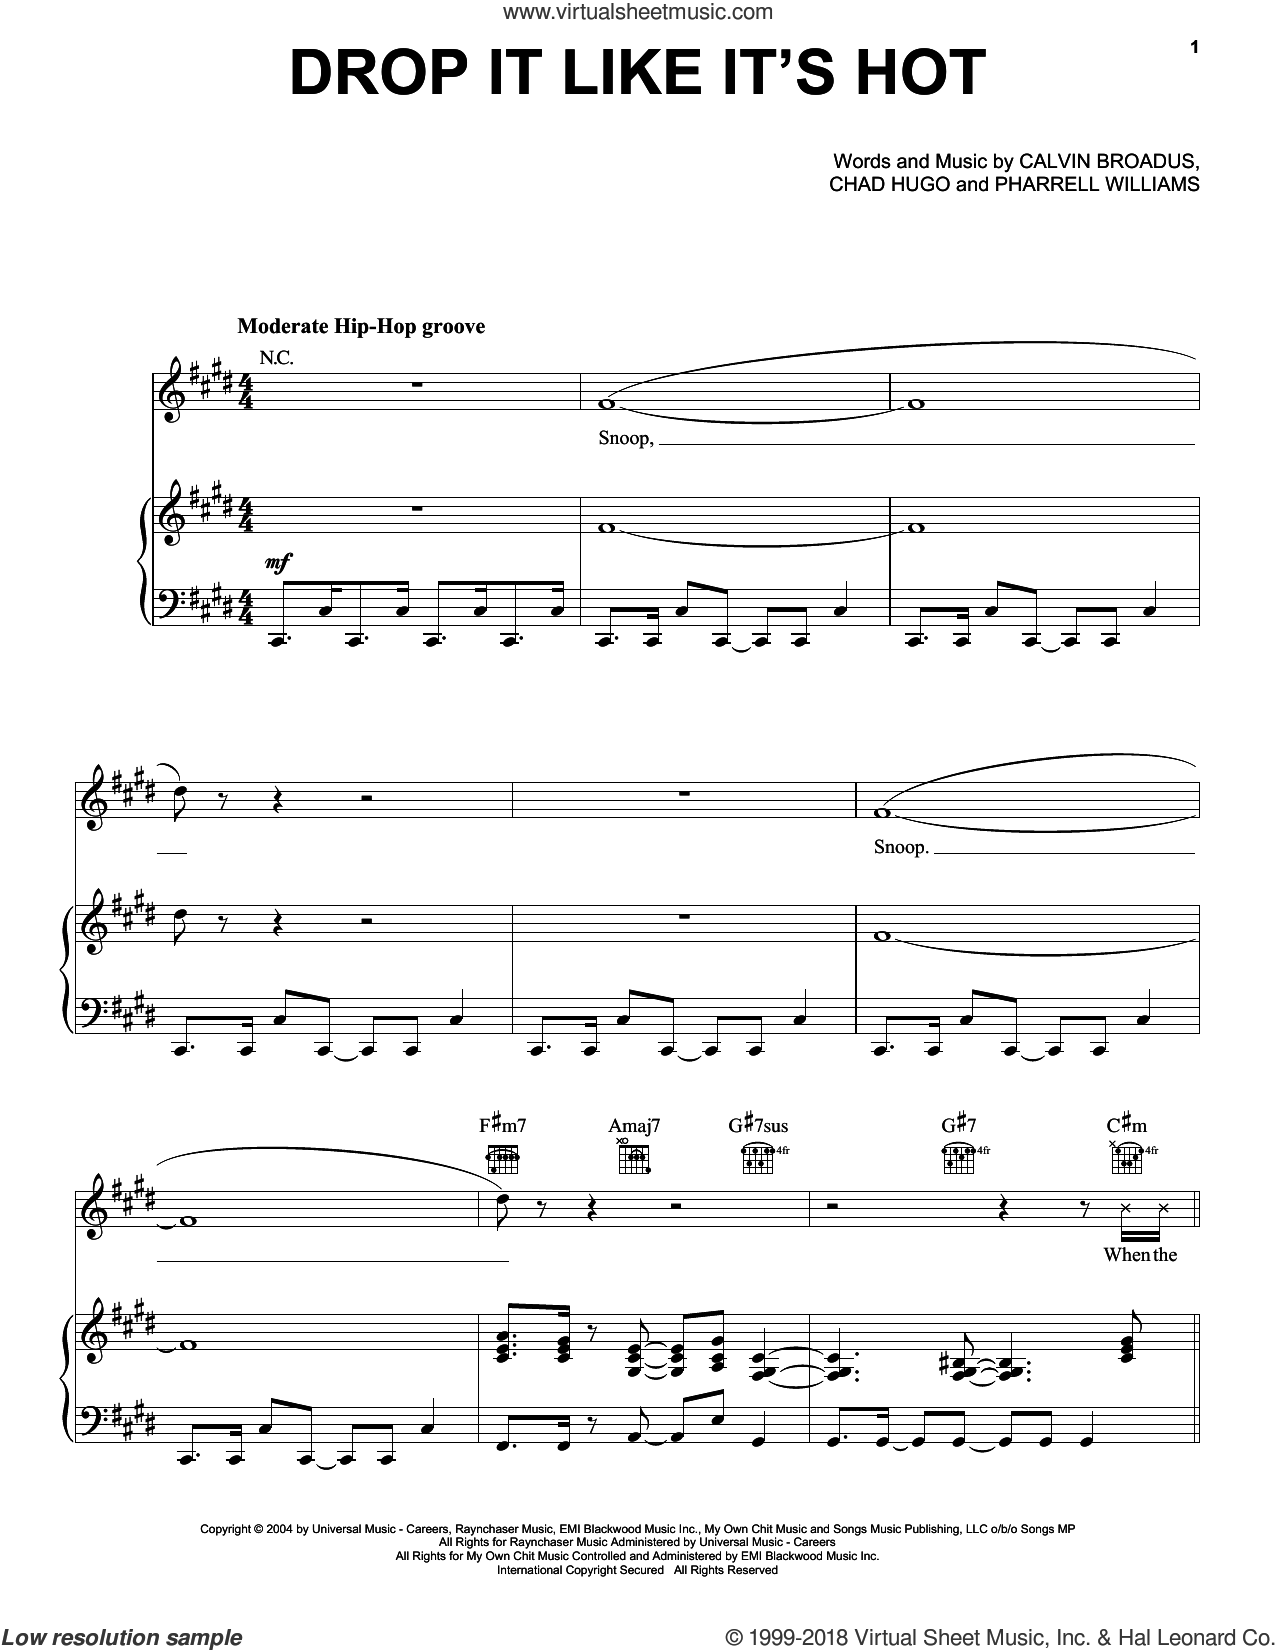 Drop It Like It's Hot sheet music for voice, piano or guitar by Snoop Dogg feat. Pharrell, Calvin Broadus, Chad Hugo and Pharrell Williams, intermediate skill level